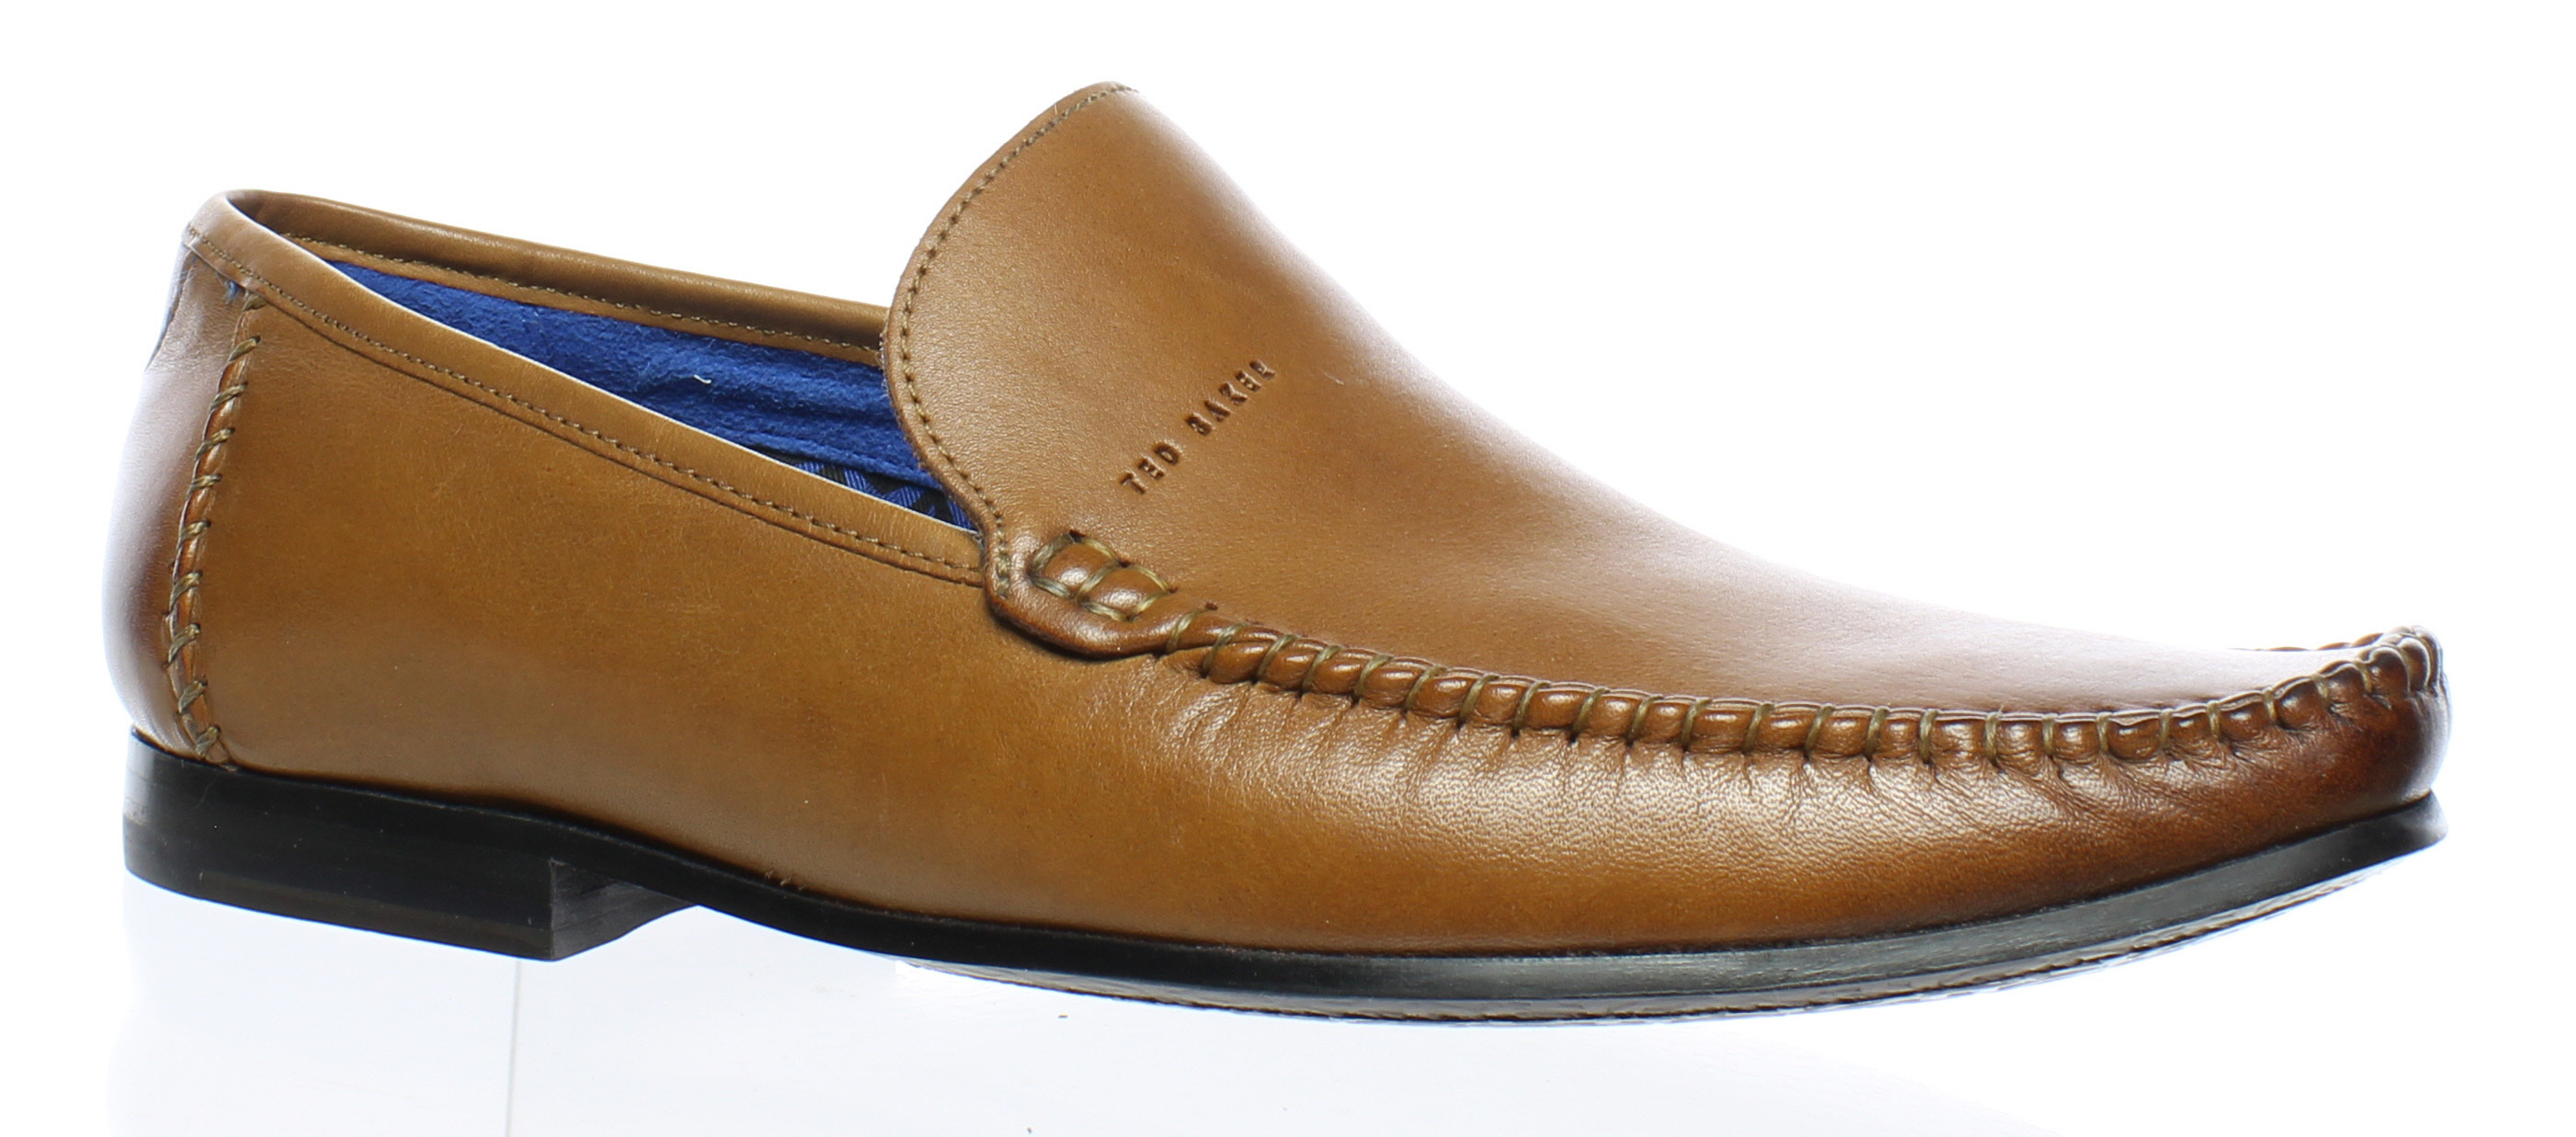 ff8439bce55f Ted Baker Mens 915078 Tan Loafers Size 7 (14779)